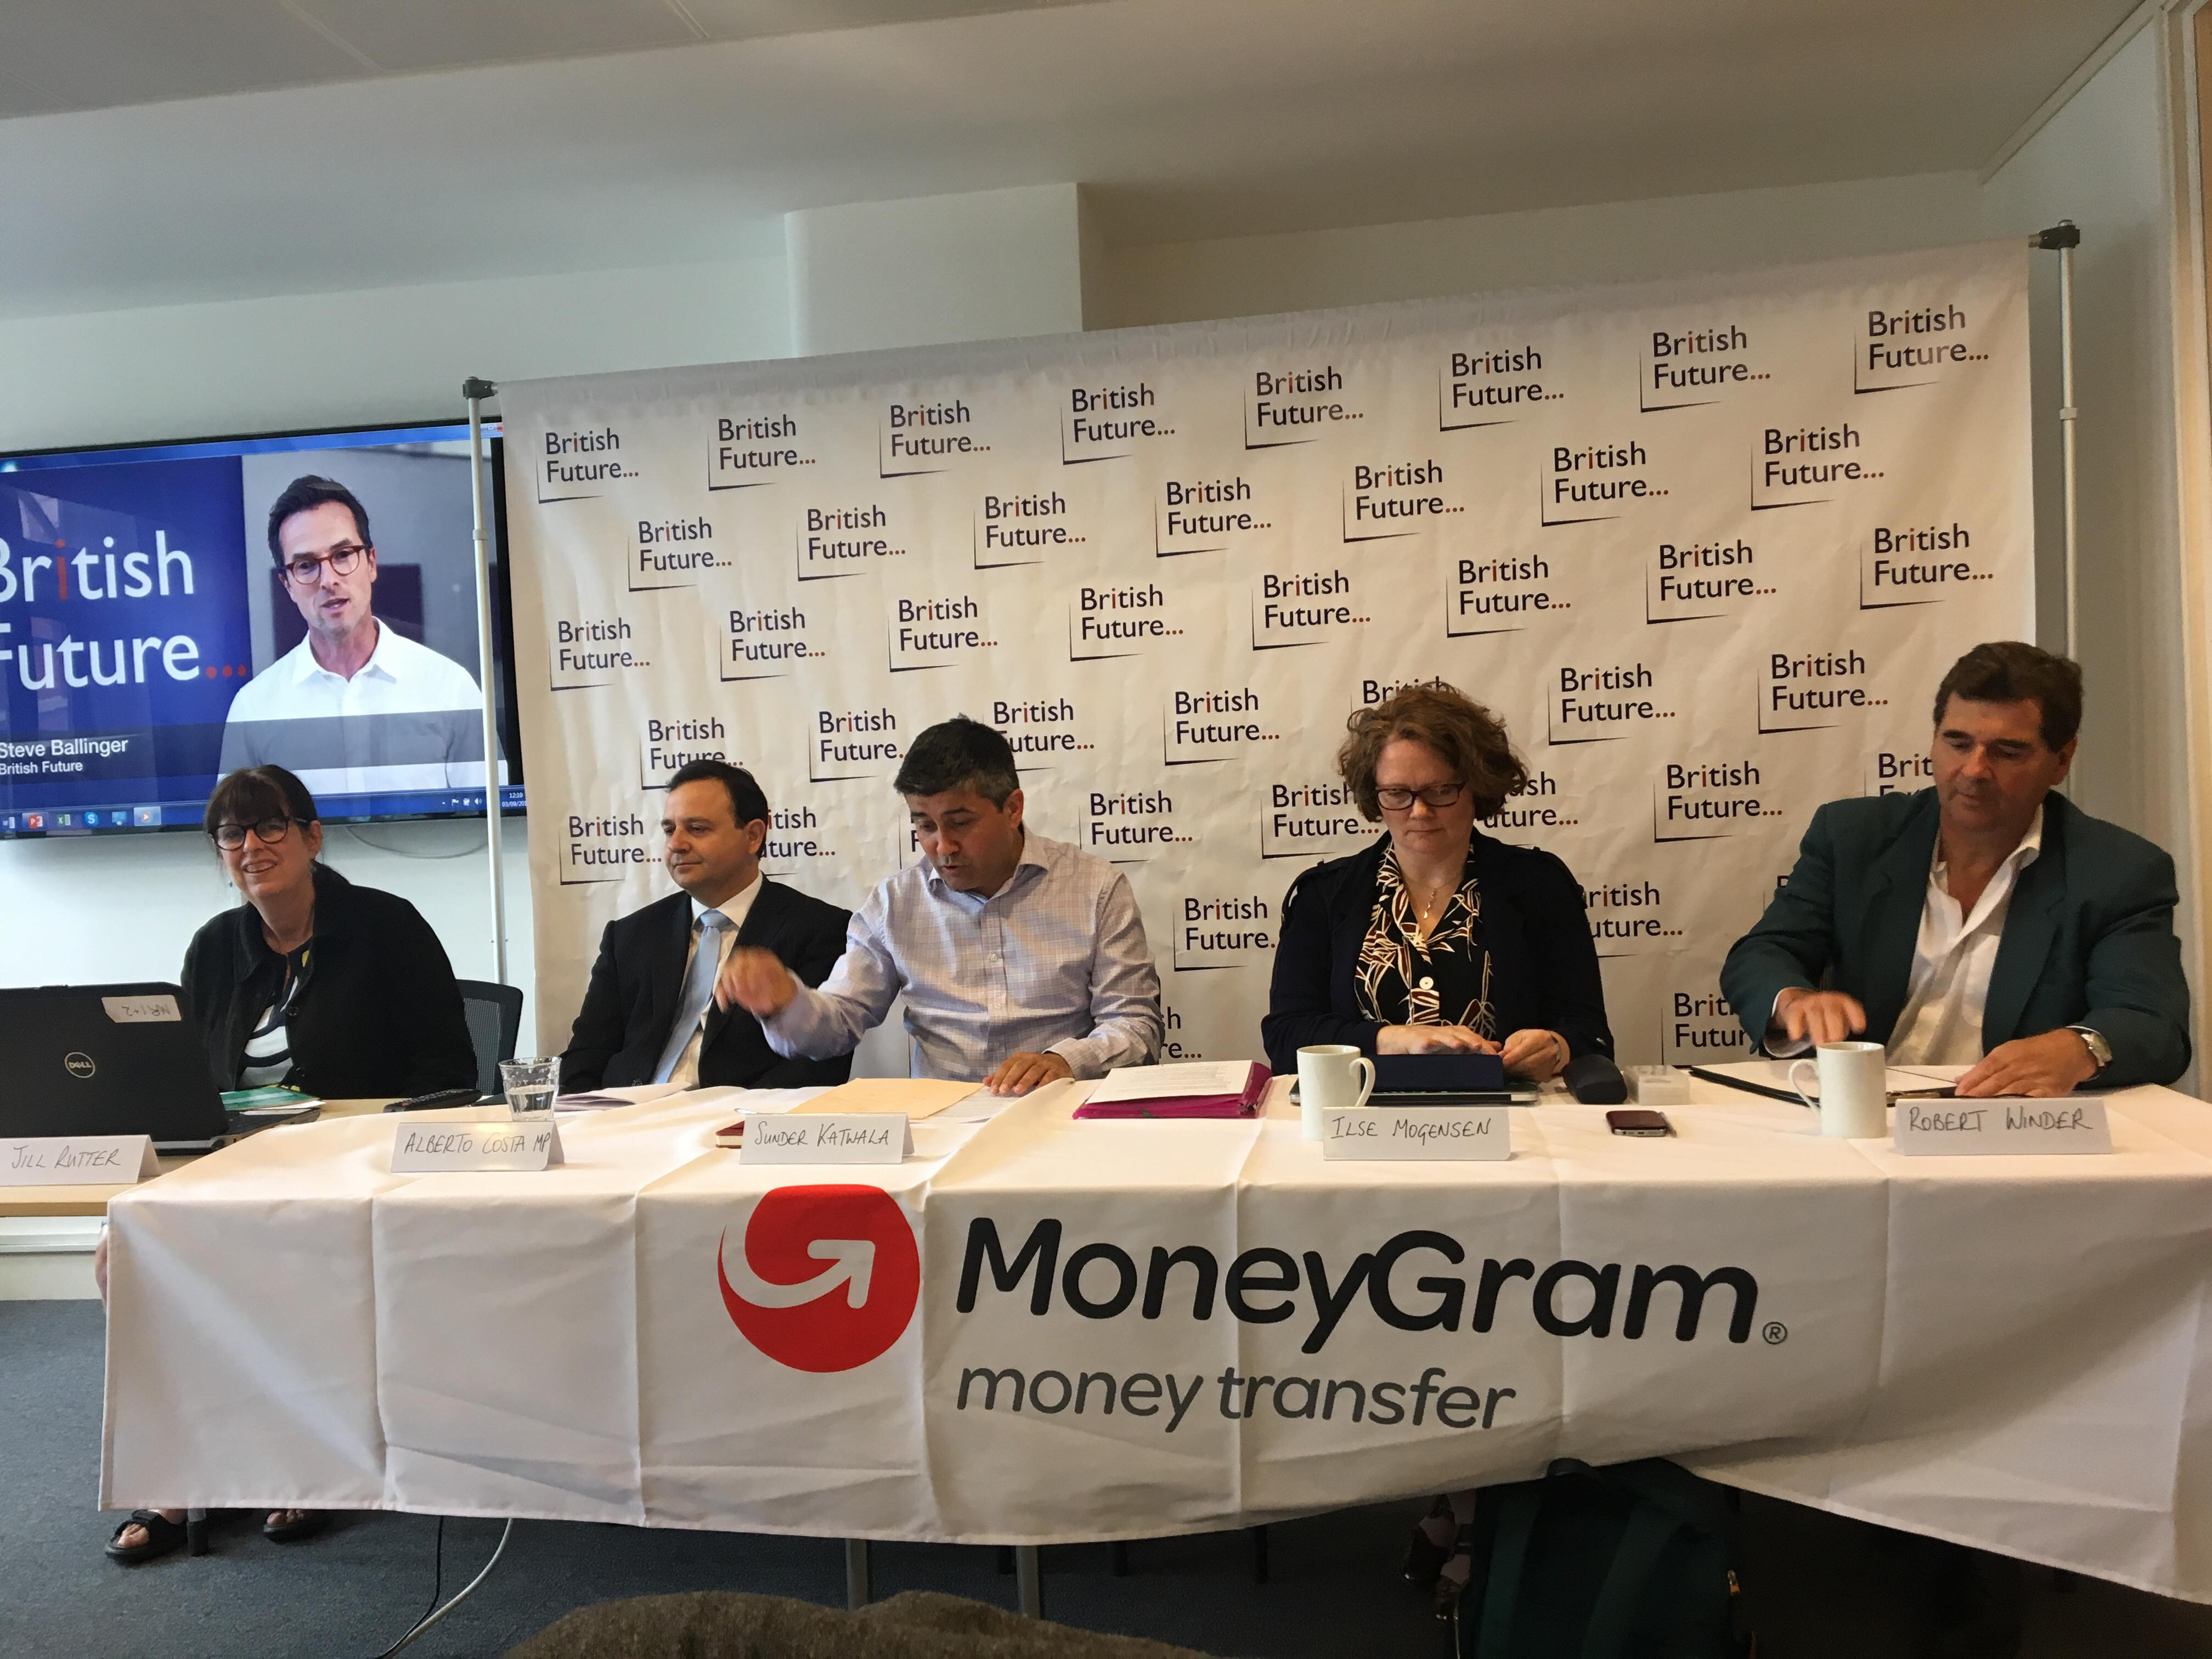 PASSPORT CONTROL: (From left) Jill Rutter, Alberto Costa MP, Sunder Katwala, Ilse Mogensen and Robert Winder at the Citizenship Inquiry launch on Tuesday (3)